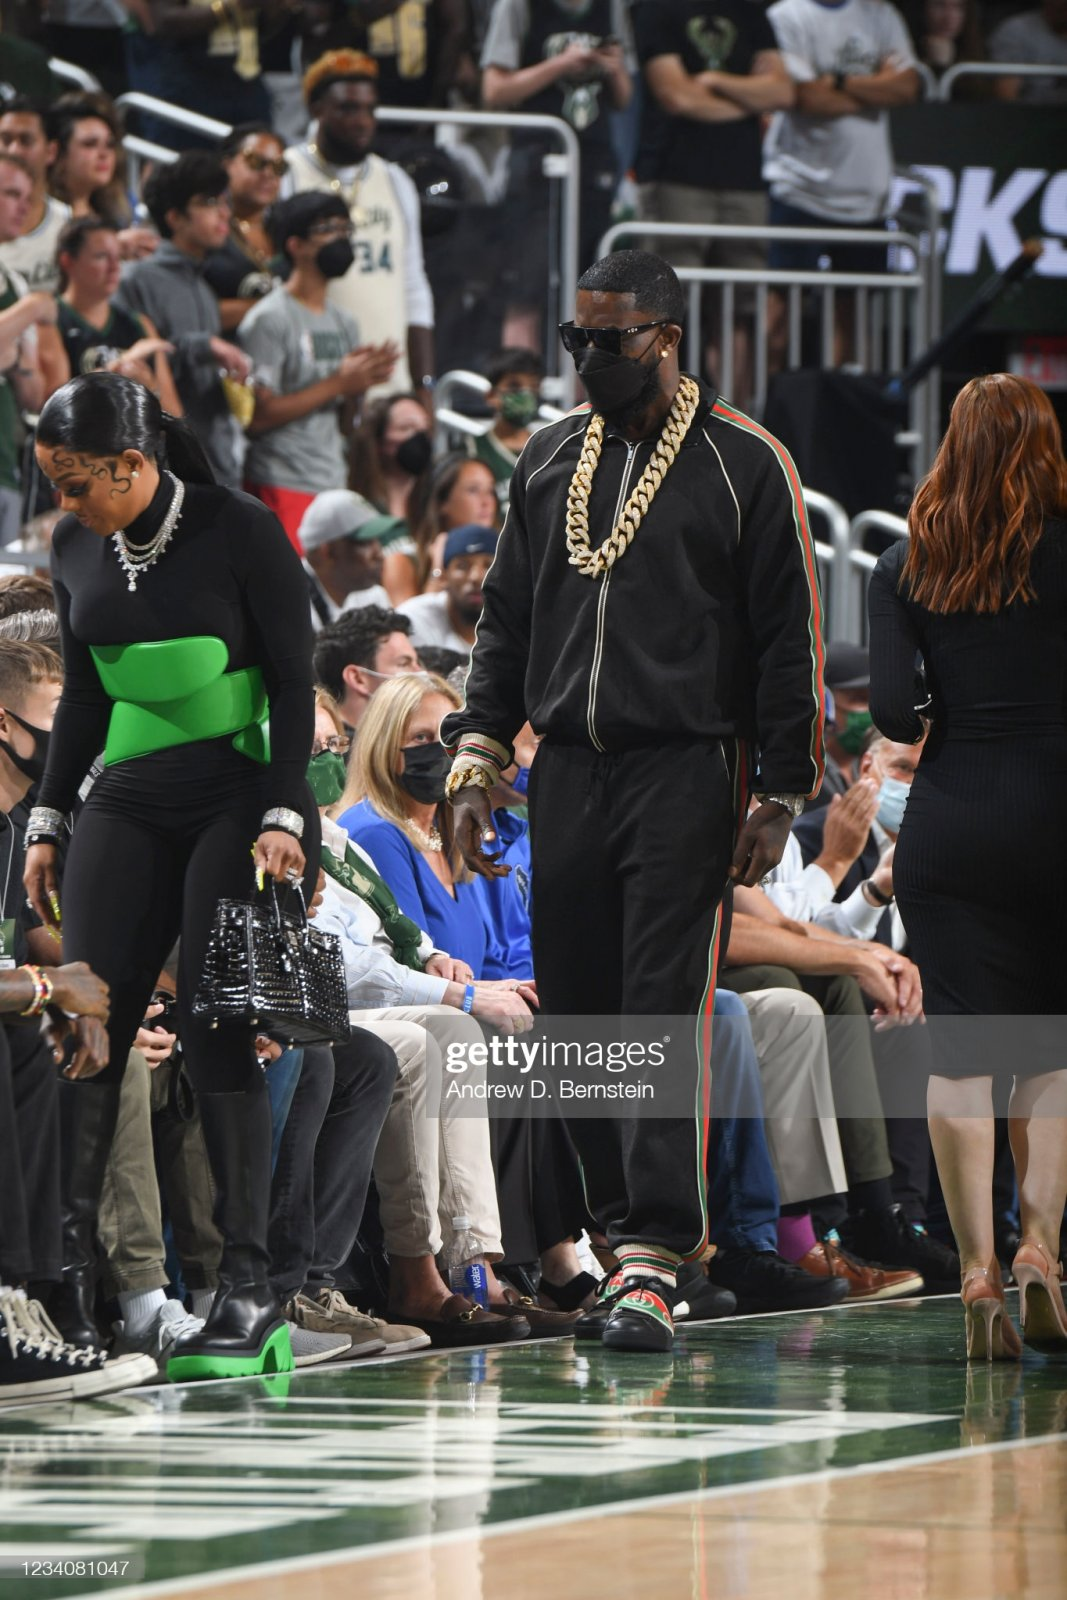 gettyimages-1234081047-2048x2048.jpg